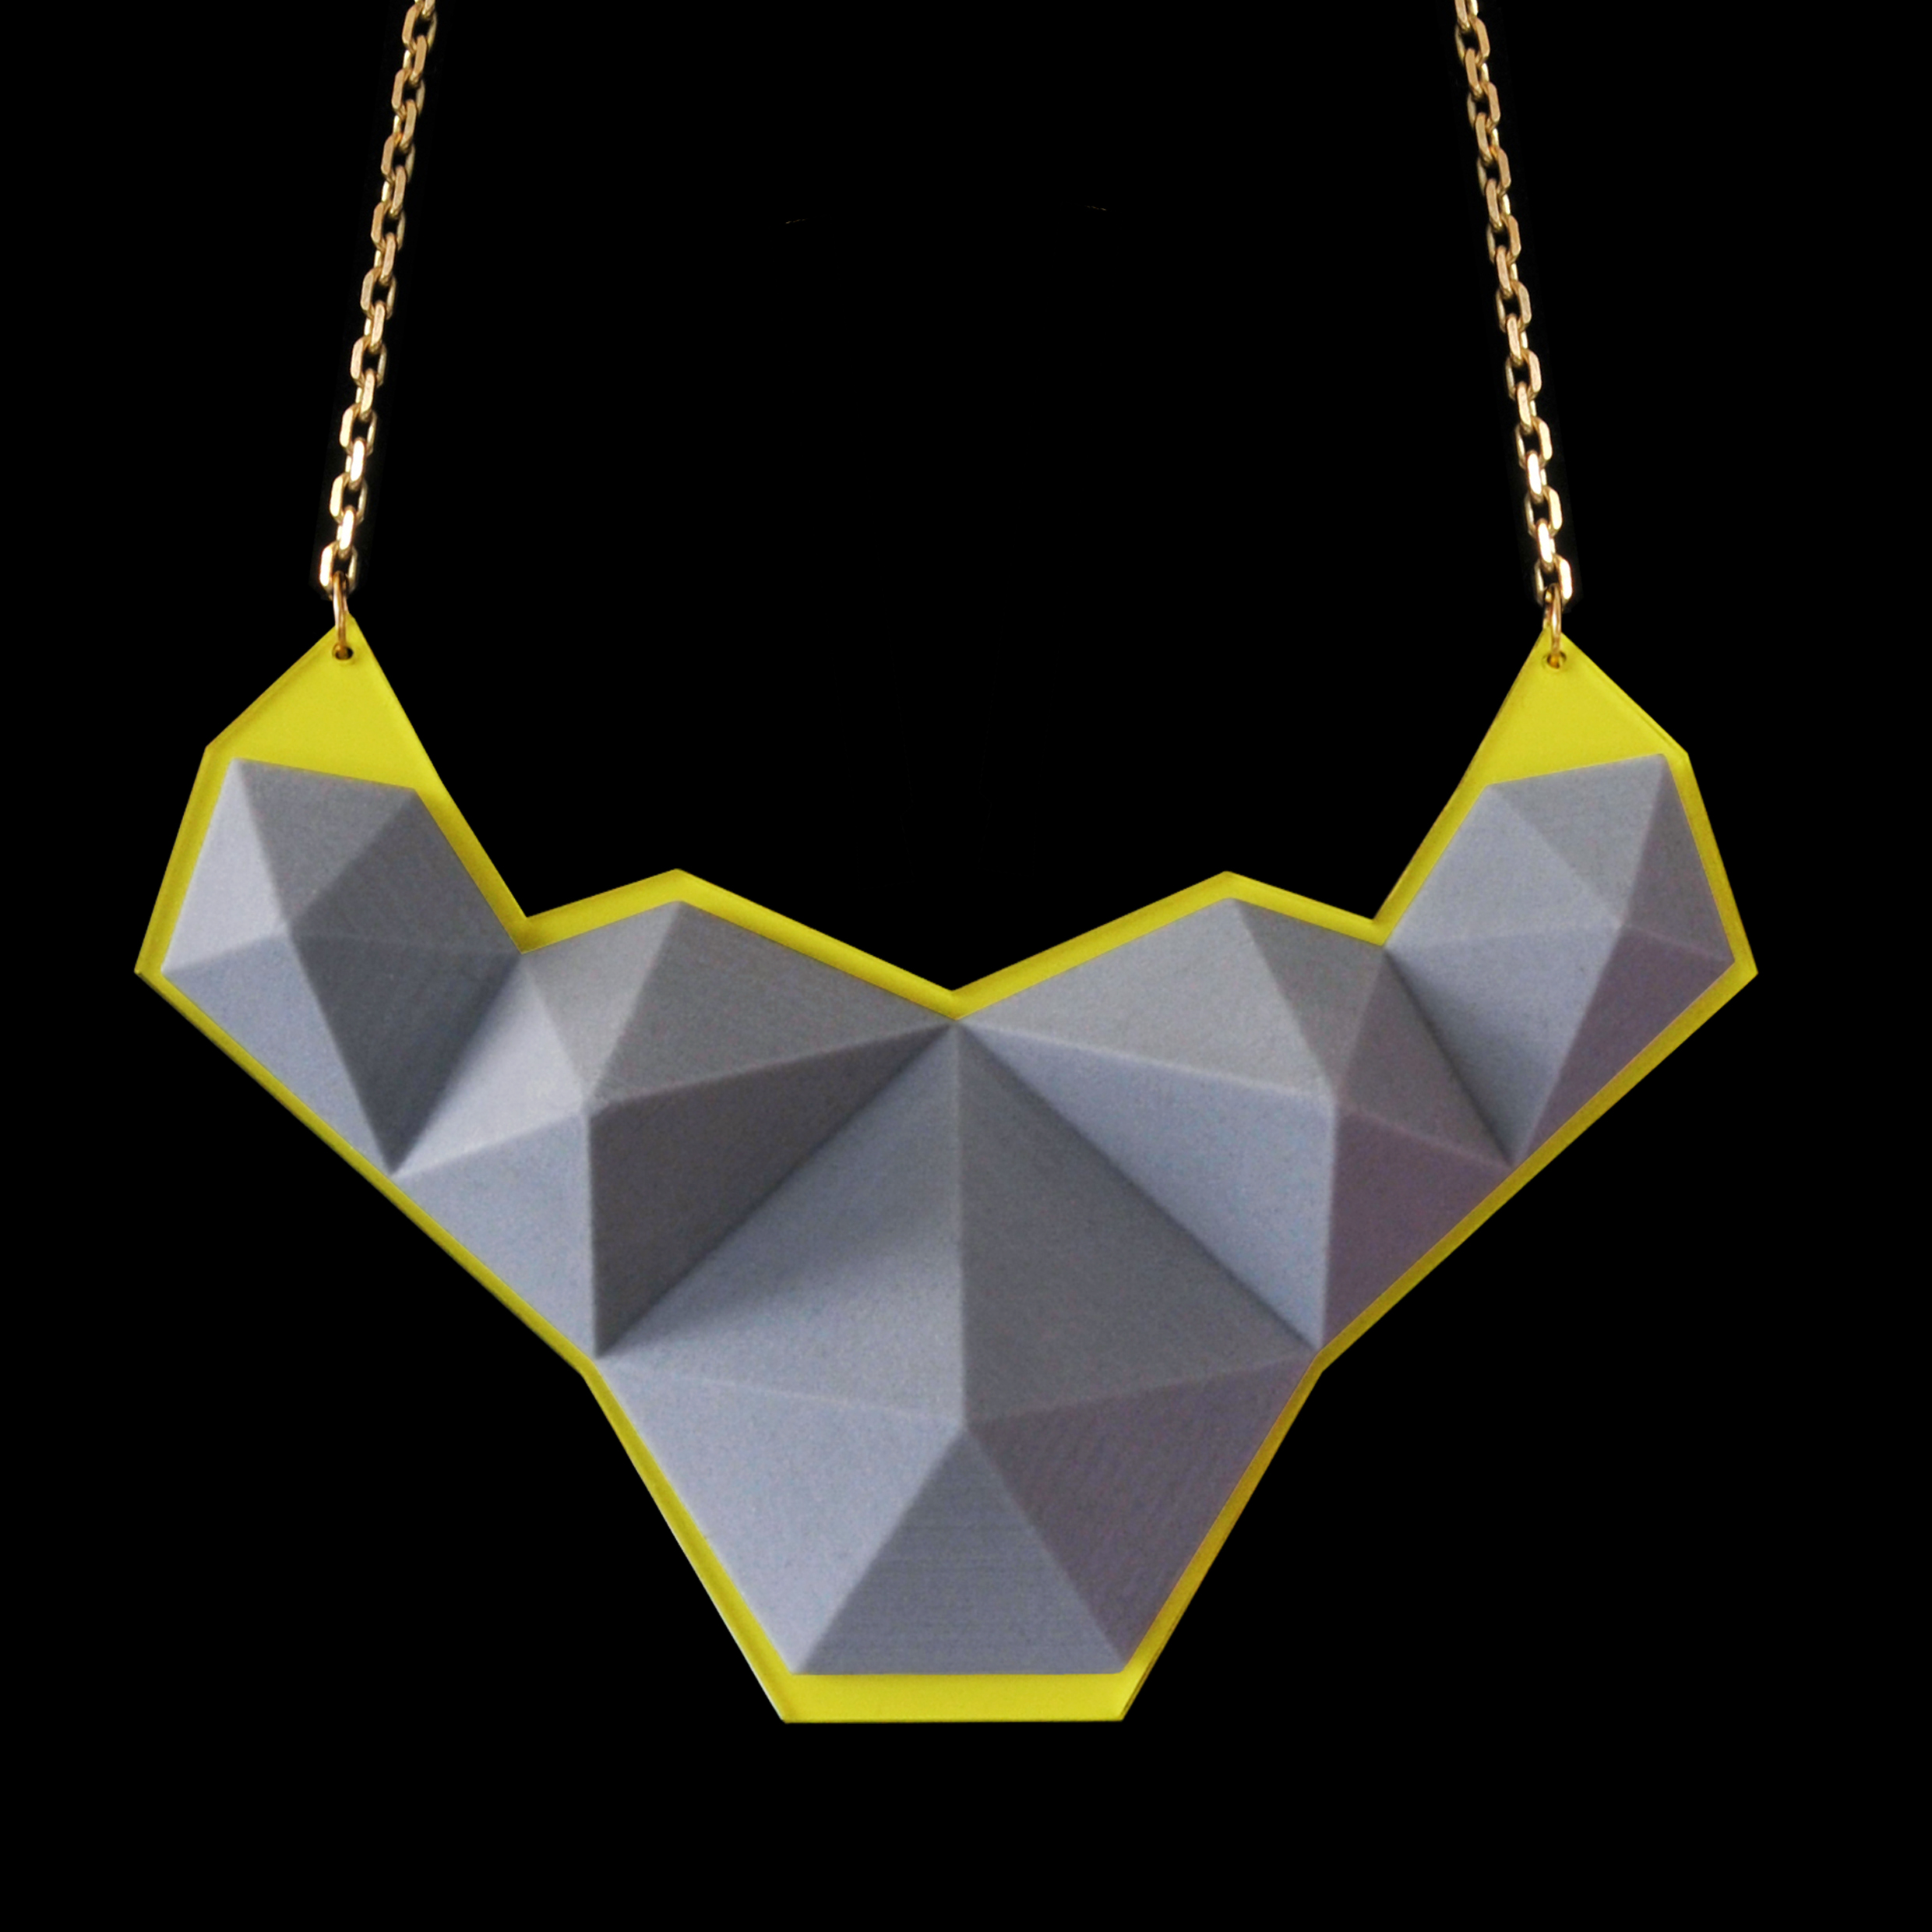 Stilio Necklace:3D printed on the zCorp 350 with Acrylic back